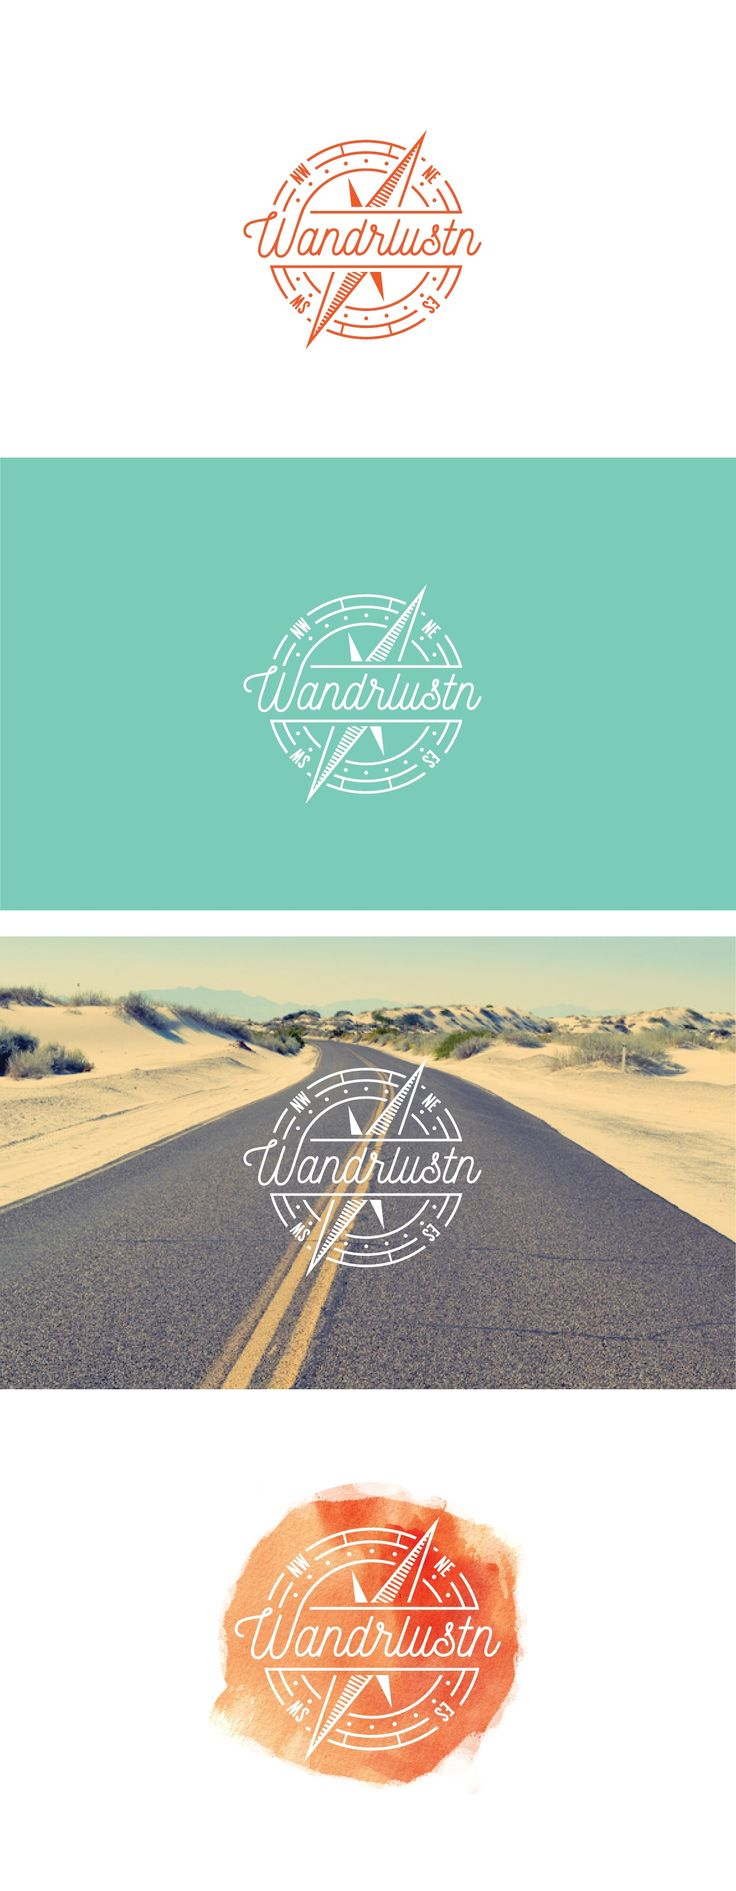 Design #23 by Matt W | Create a modern bohemian style logo for a travel blog